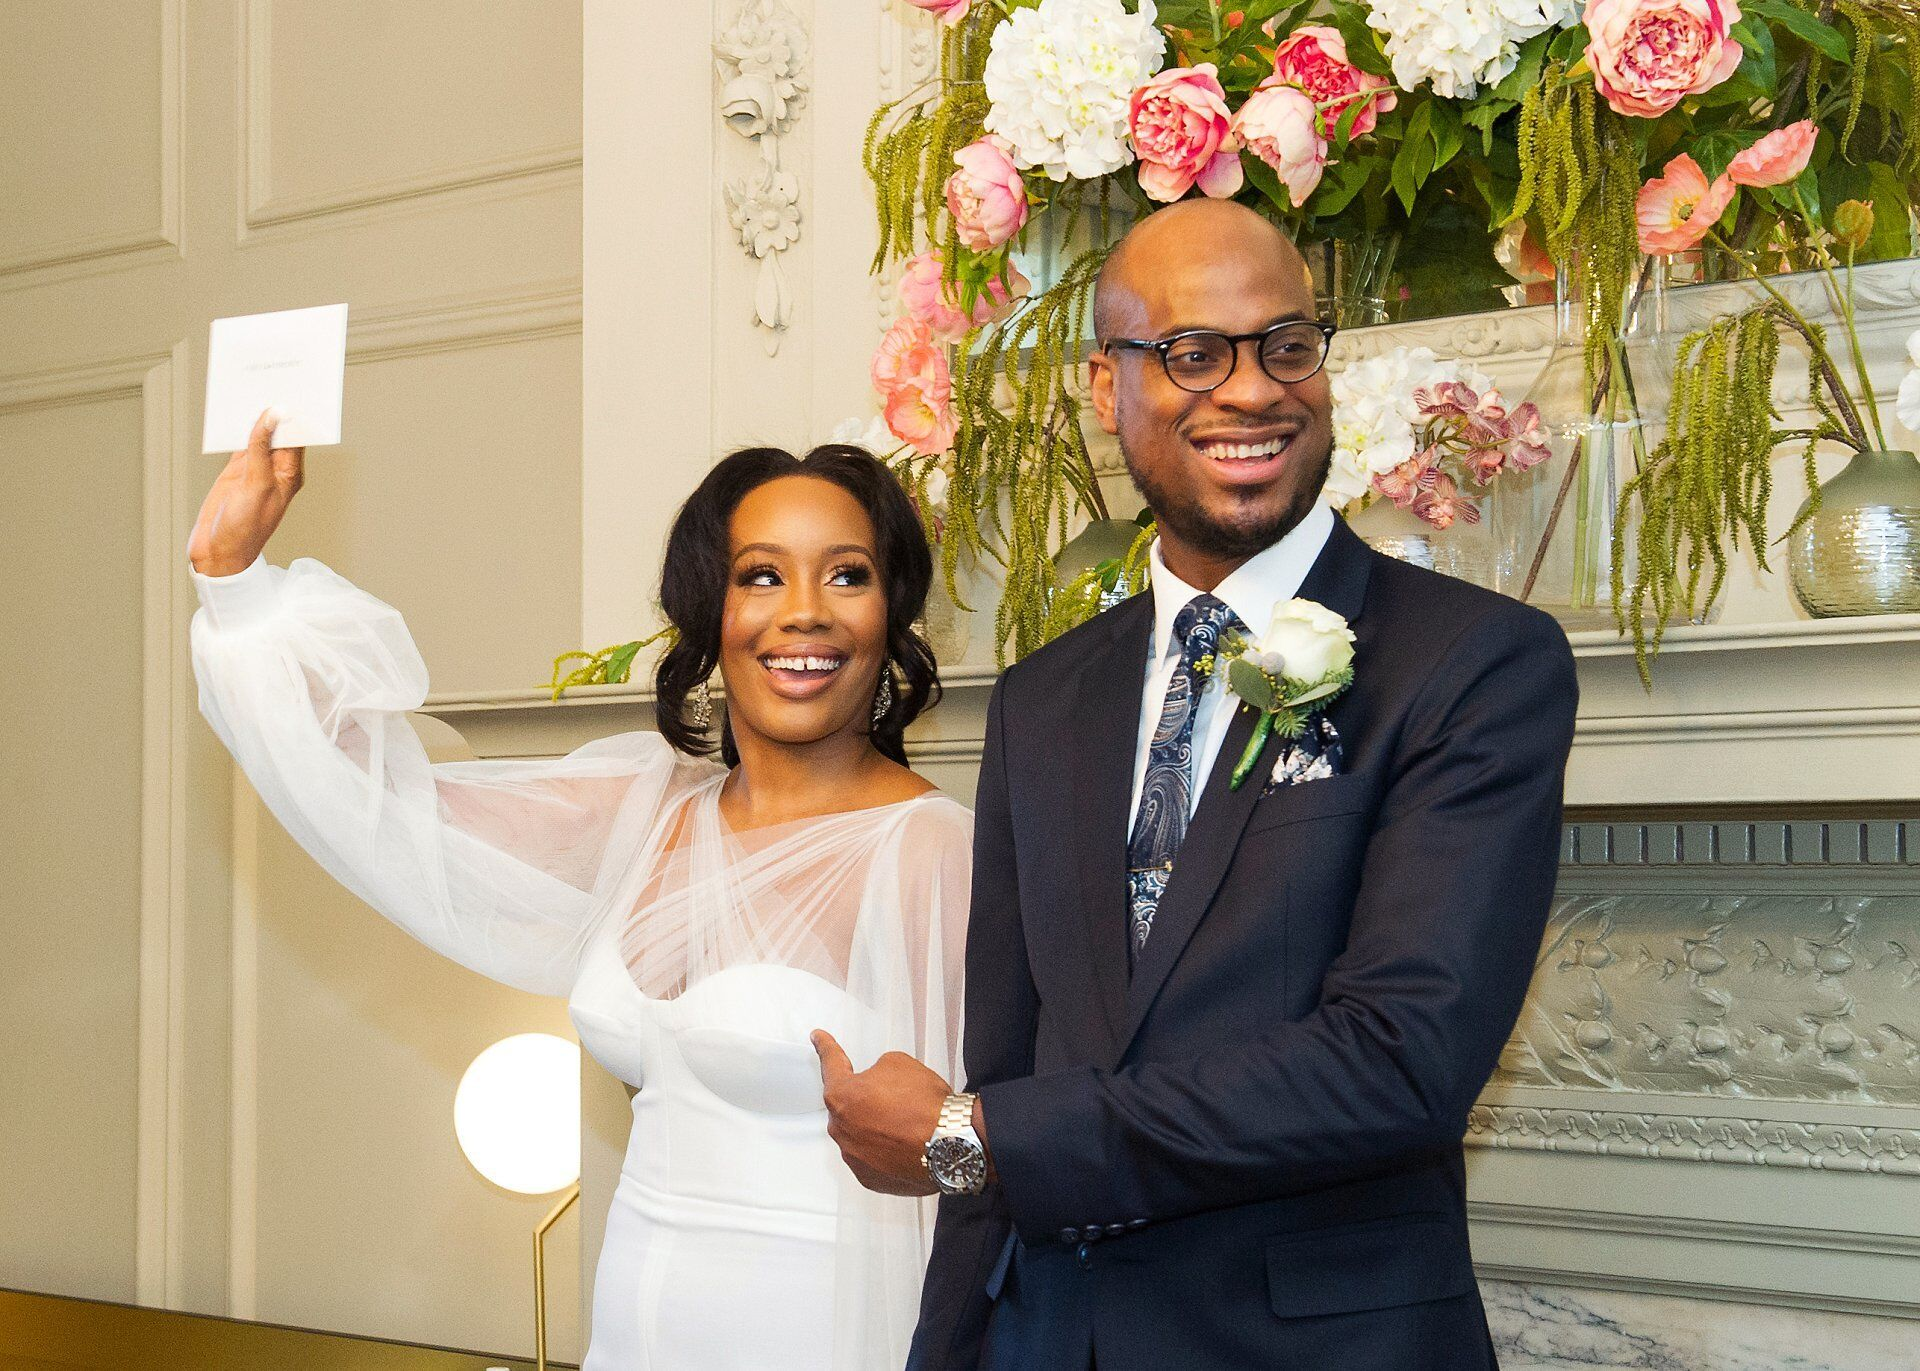 bride holds their marriage certificate aloft as groom looks towards guests, smiling